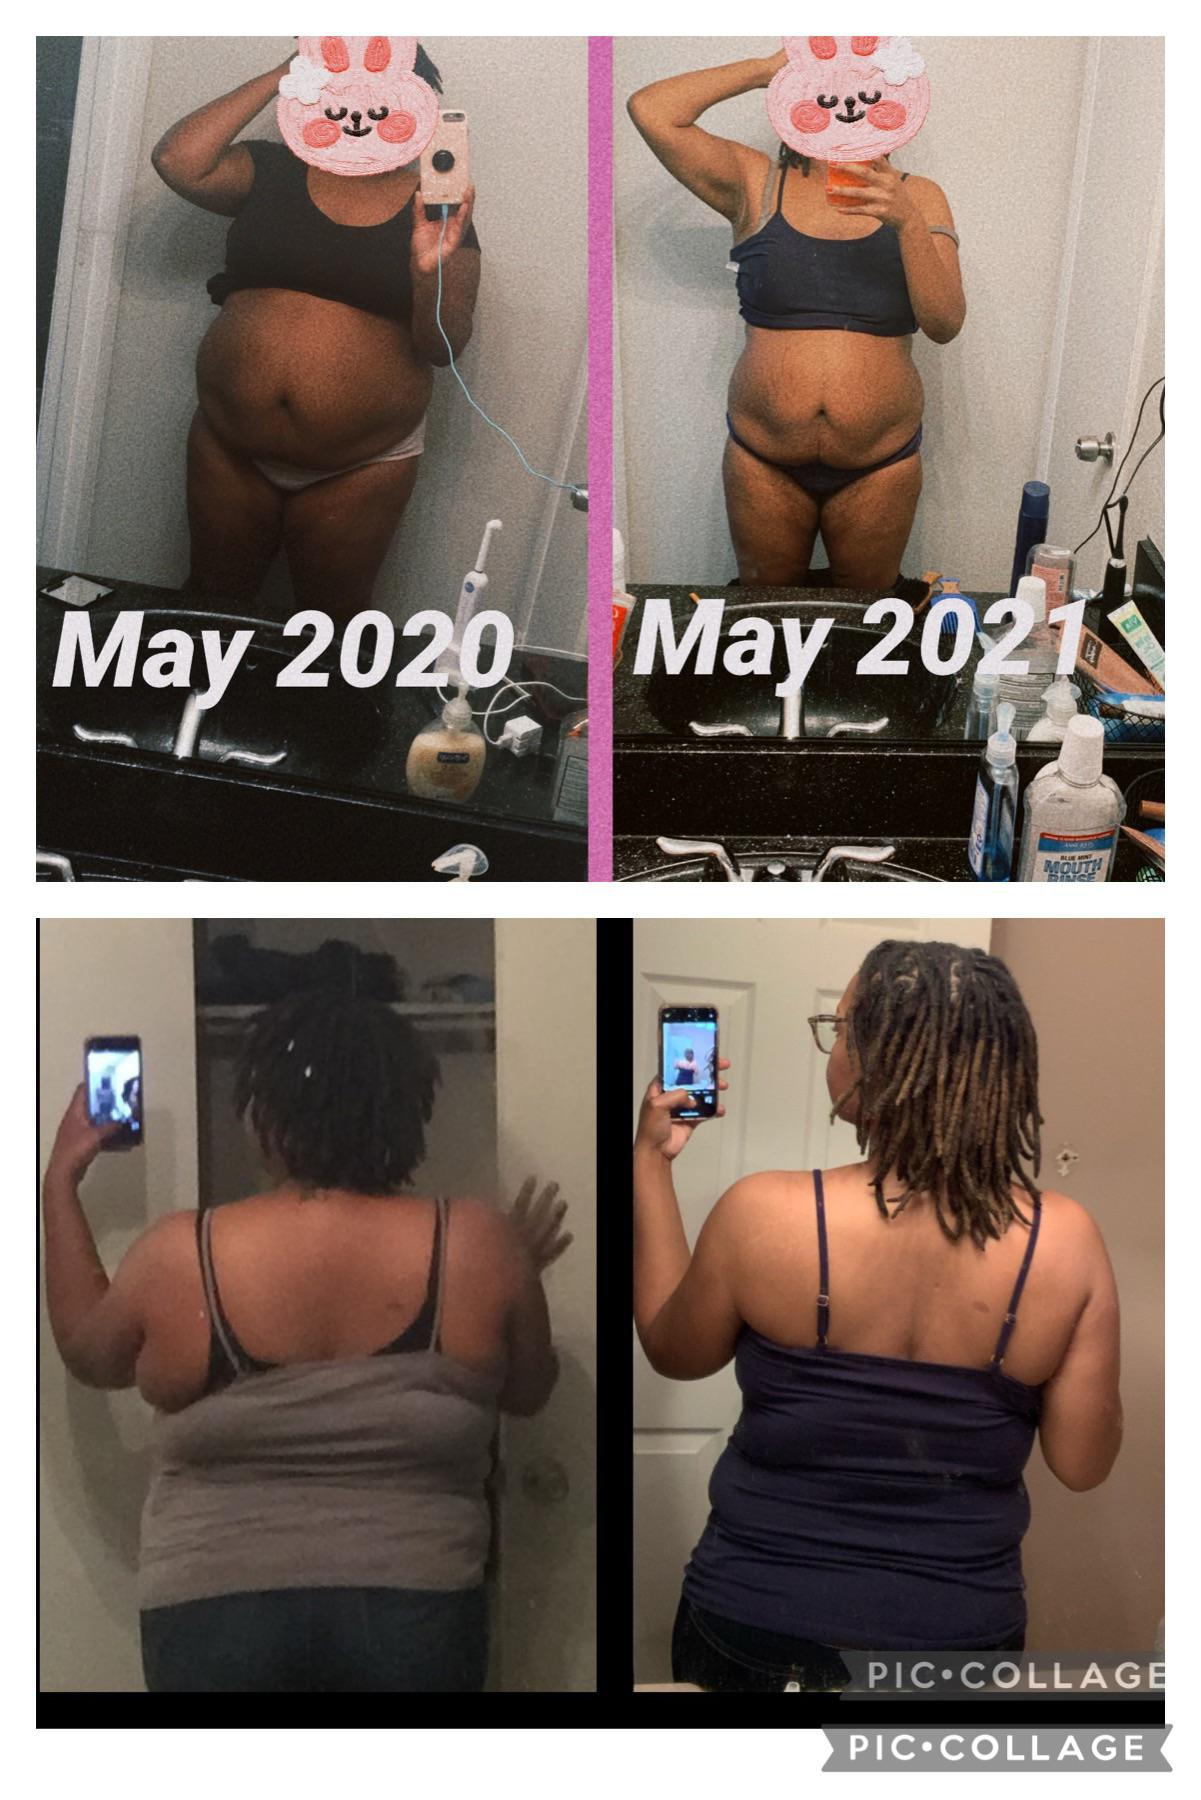 59 lbs Fat Loss Before and After 5 foot 7 Female 265 lbs to 206 lbs